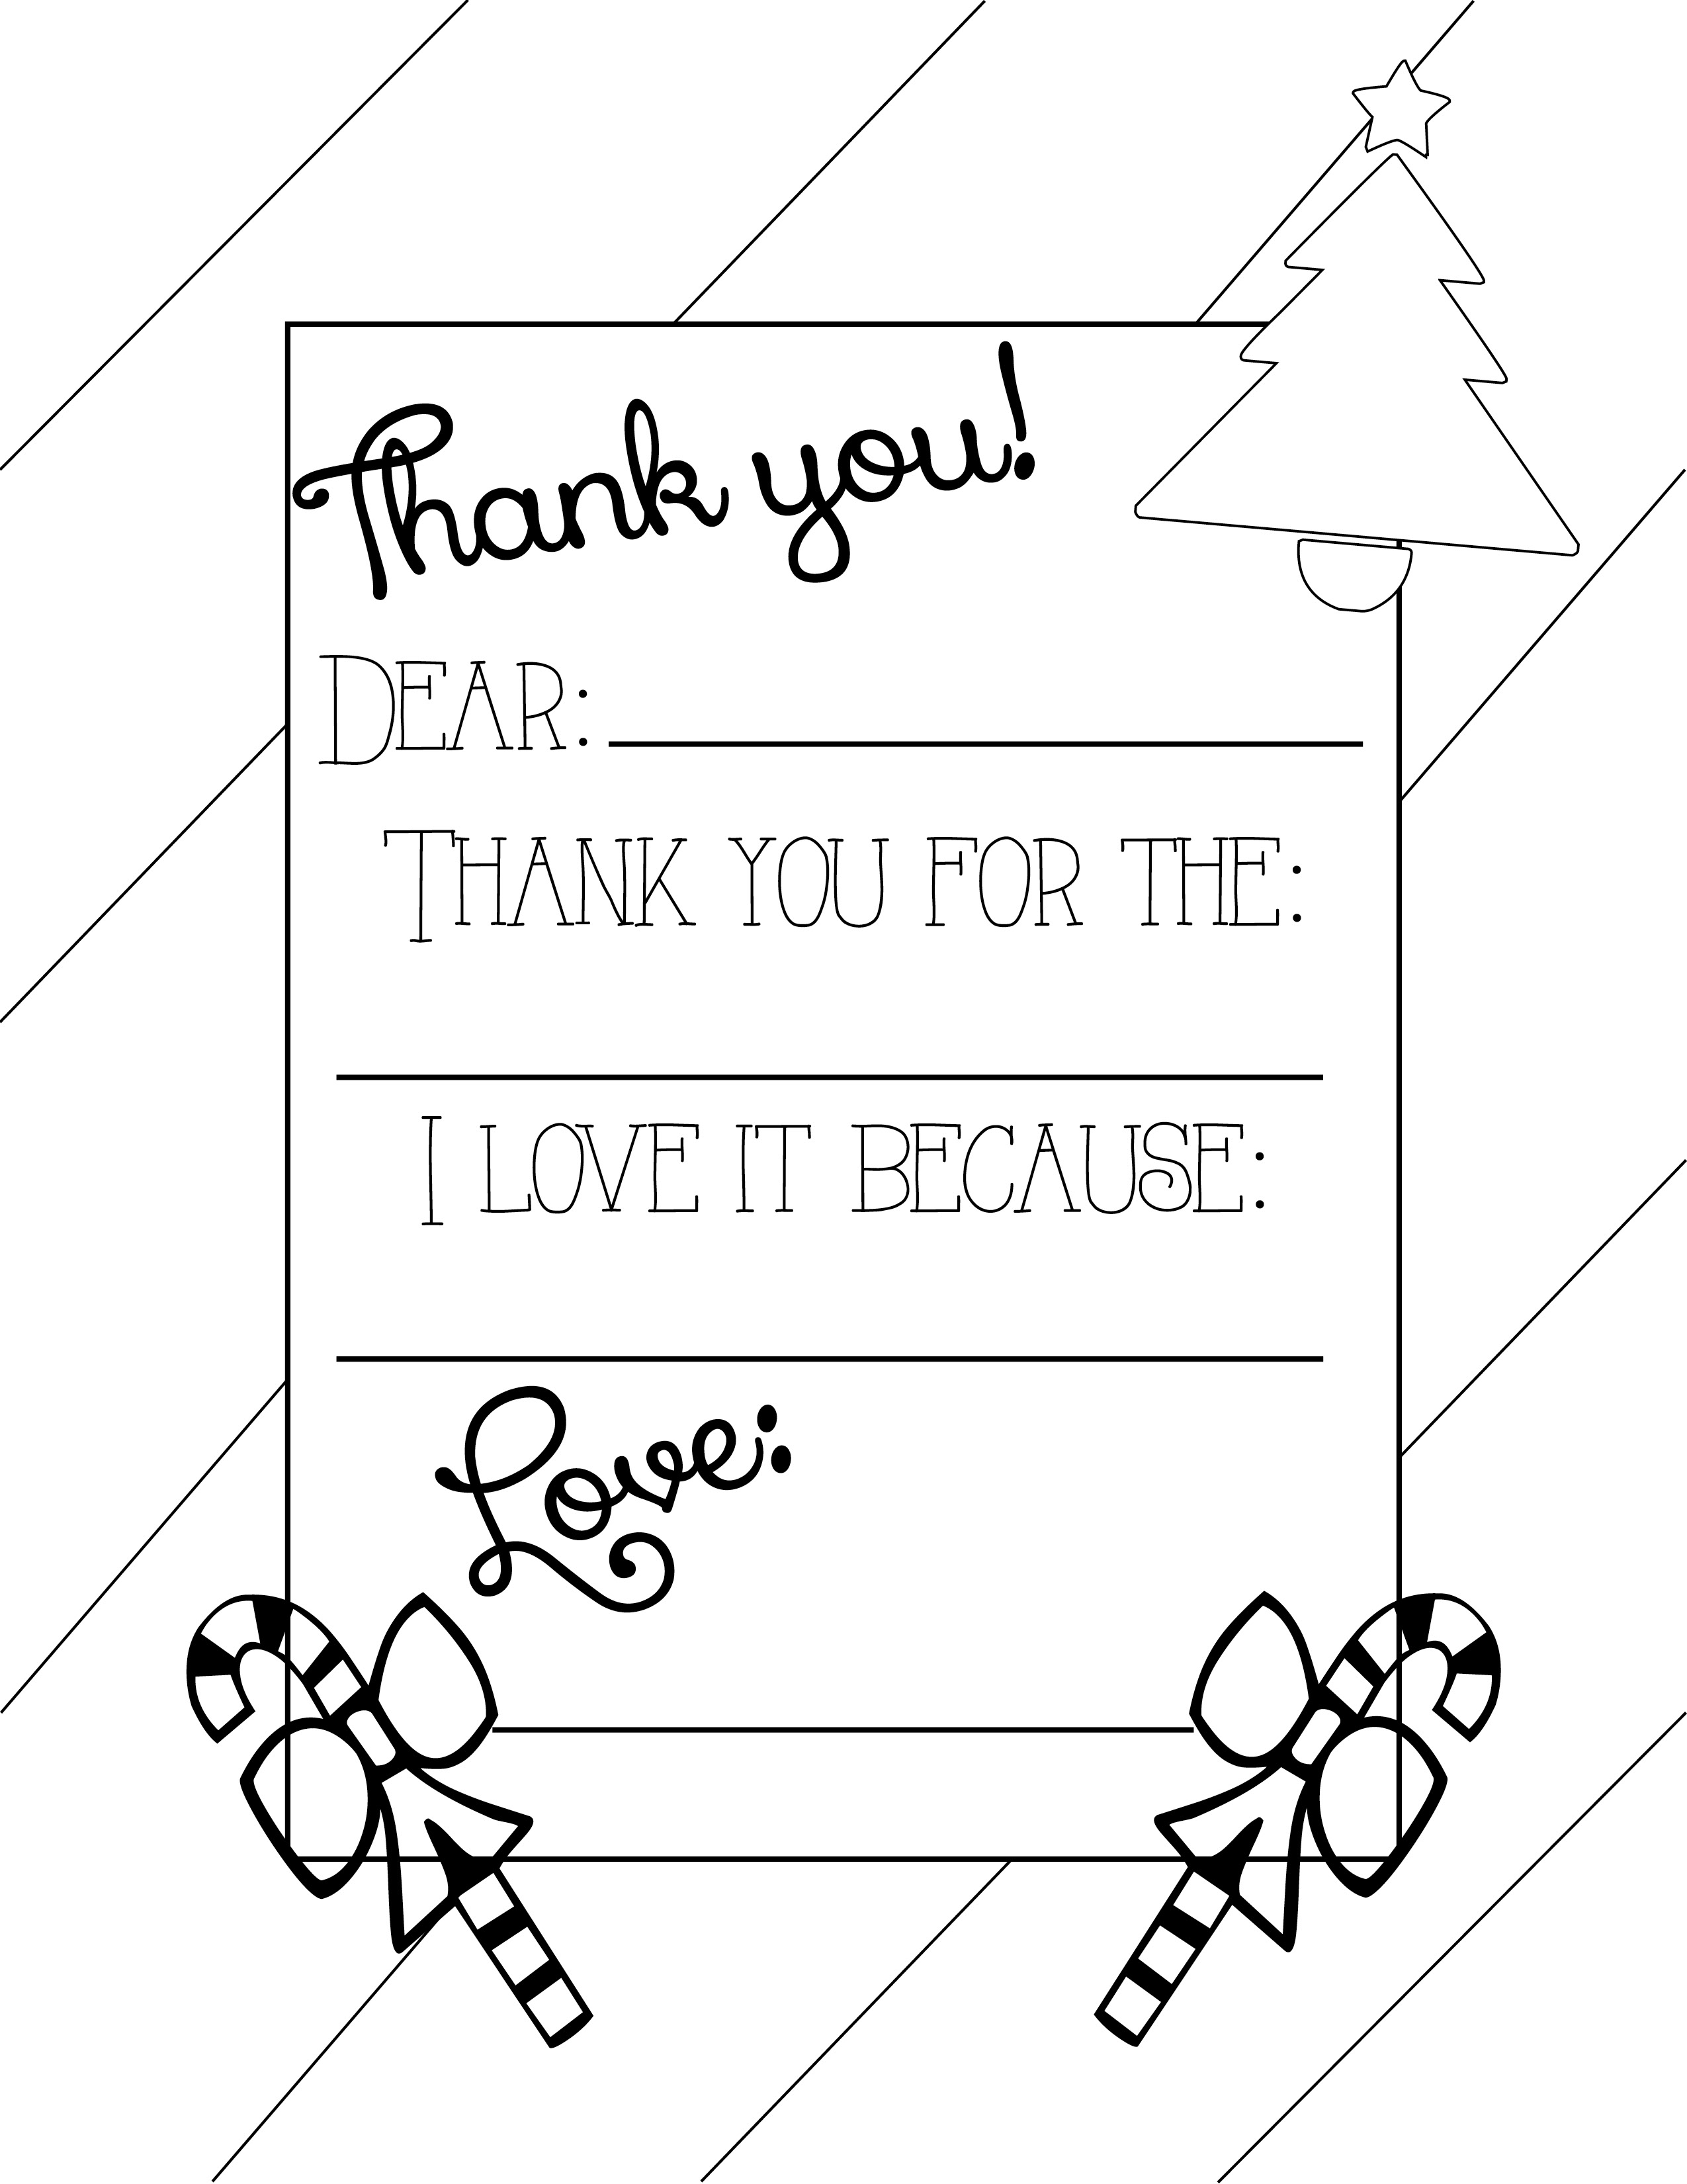 Coloring Pages Christmas Cards Coloring Pages christmas card coloring pages eassume com free az pages